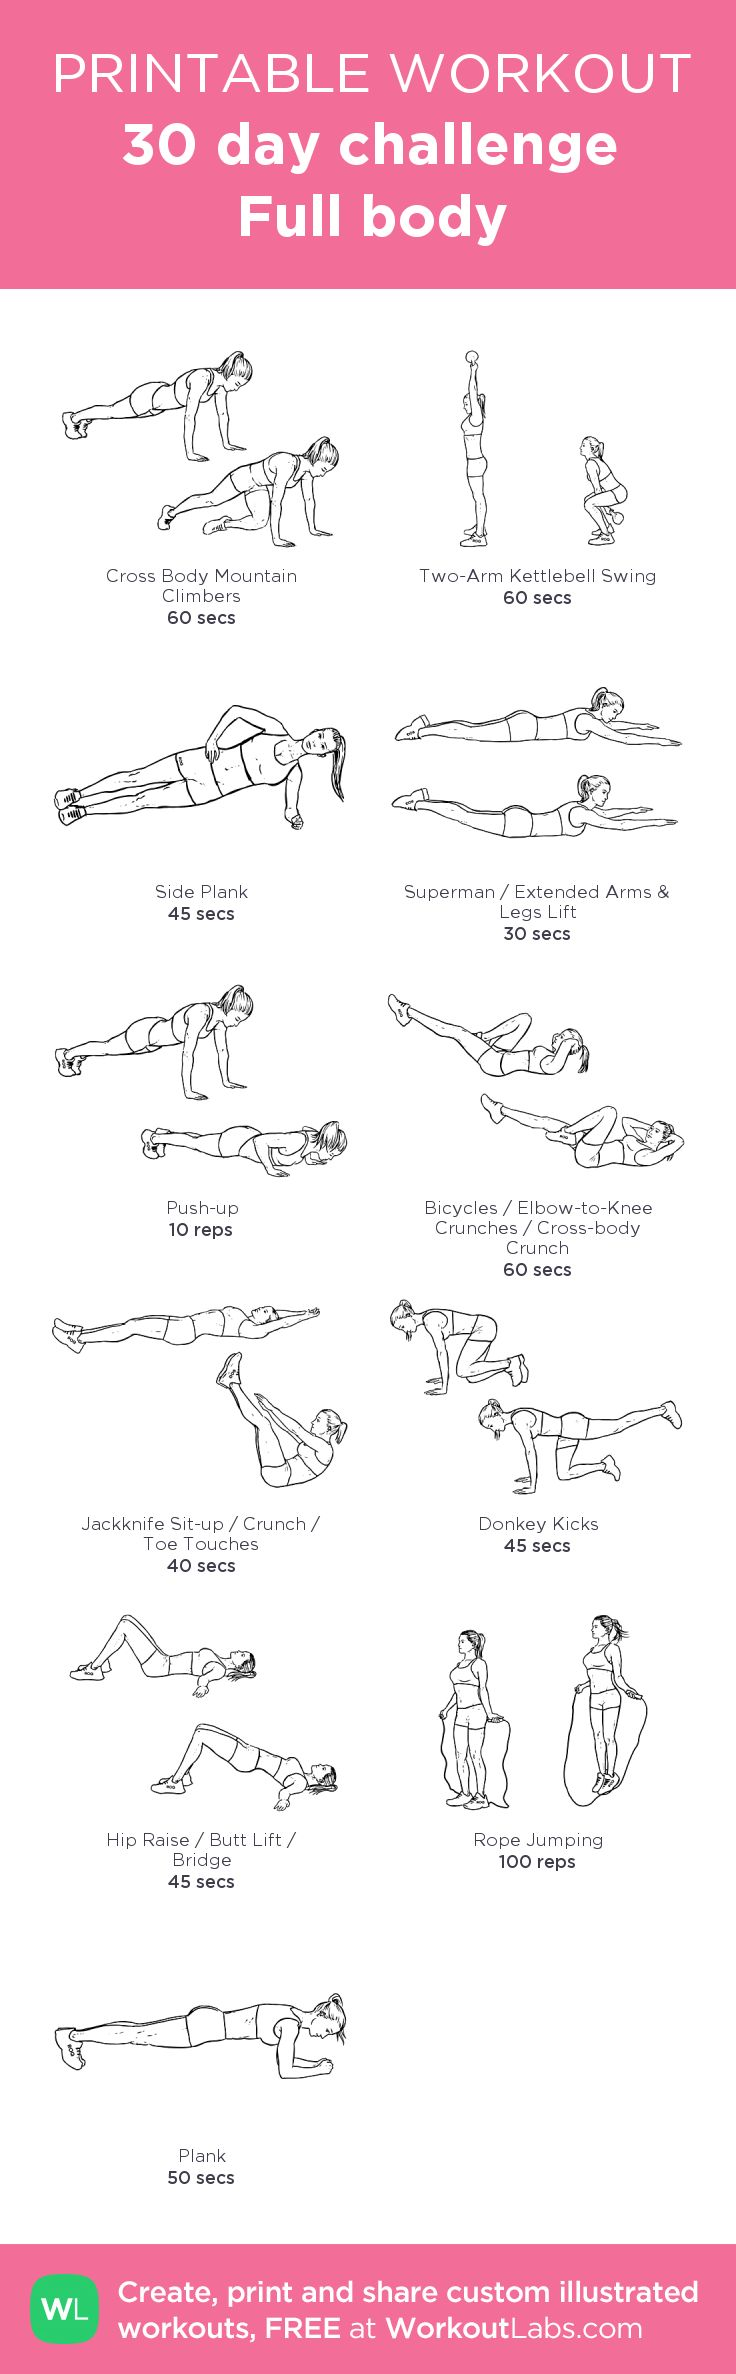 30 day challenge Full body: my visual workout created at WorkoutLabs.com • Click through to customize and download as a FREE PDF! #customworkout